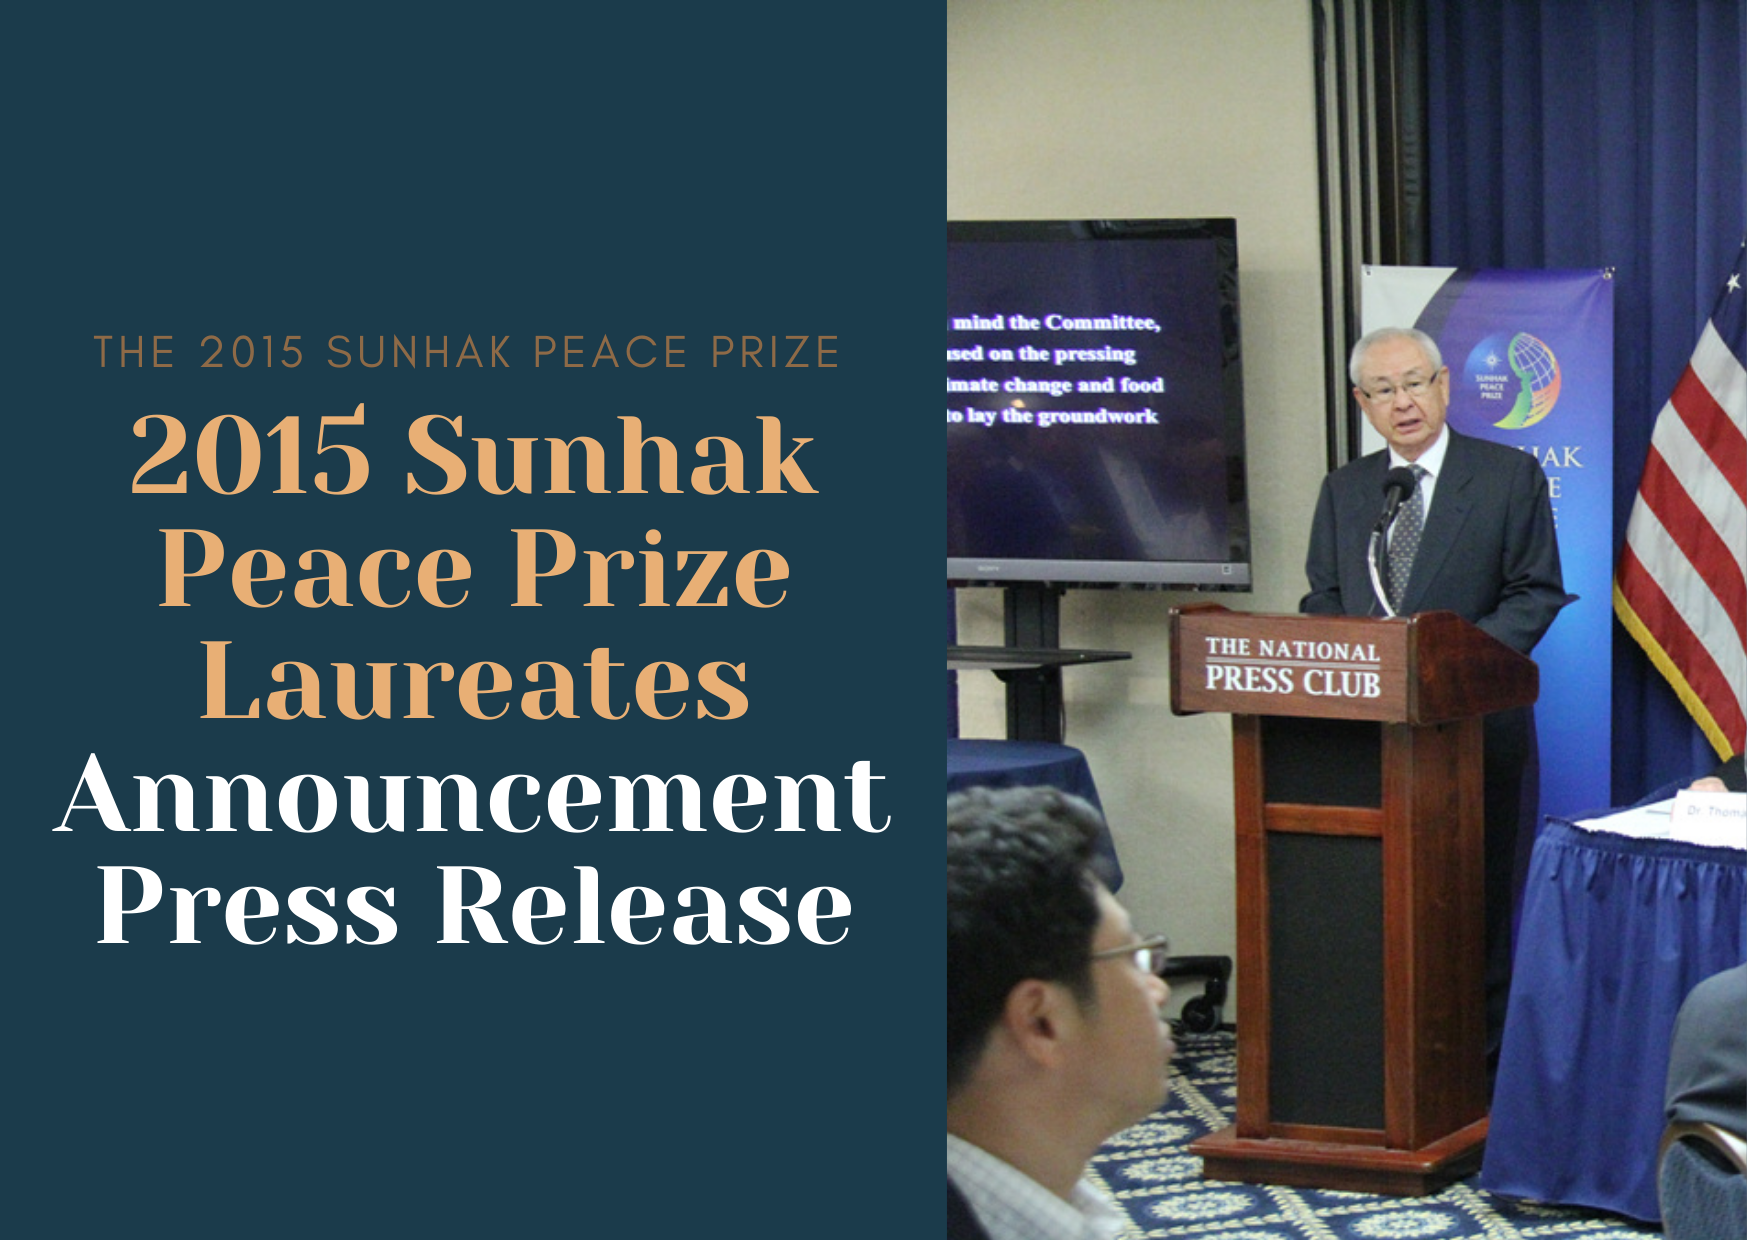 Inaugural Sunhak Peace Prize Awarded To Renowned Sustainable Development Advocates (06082015) 썸네일